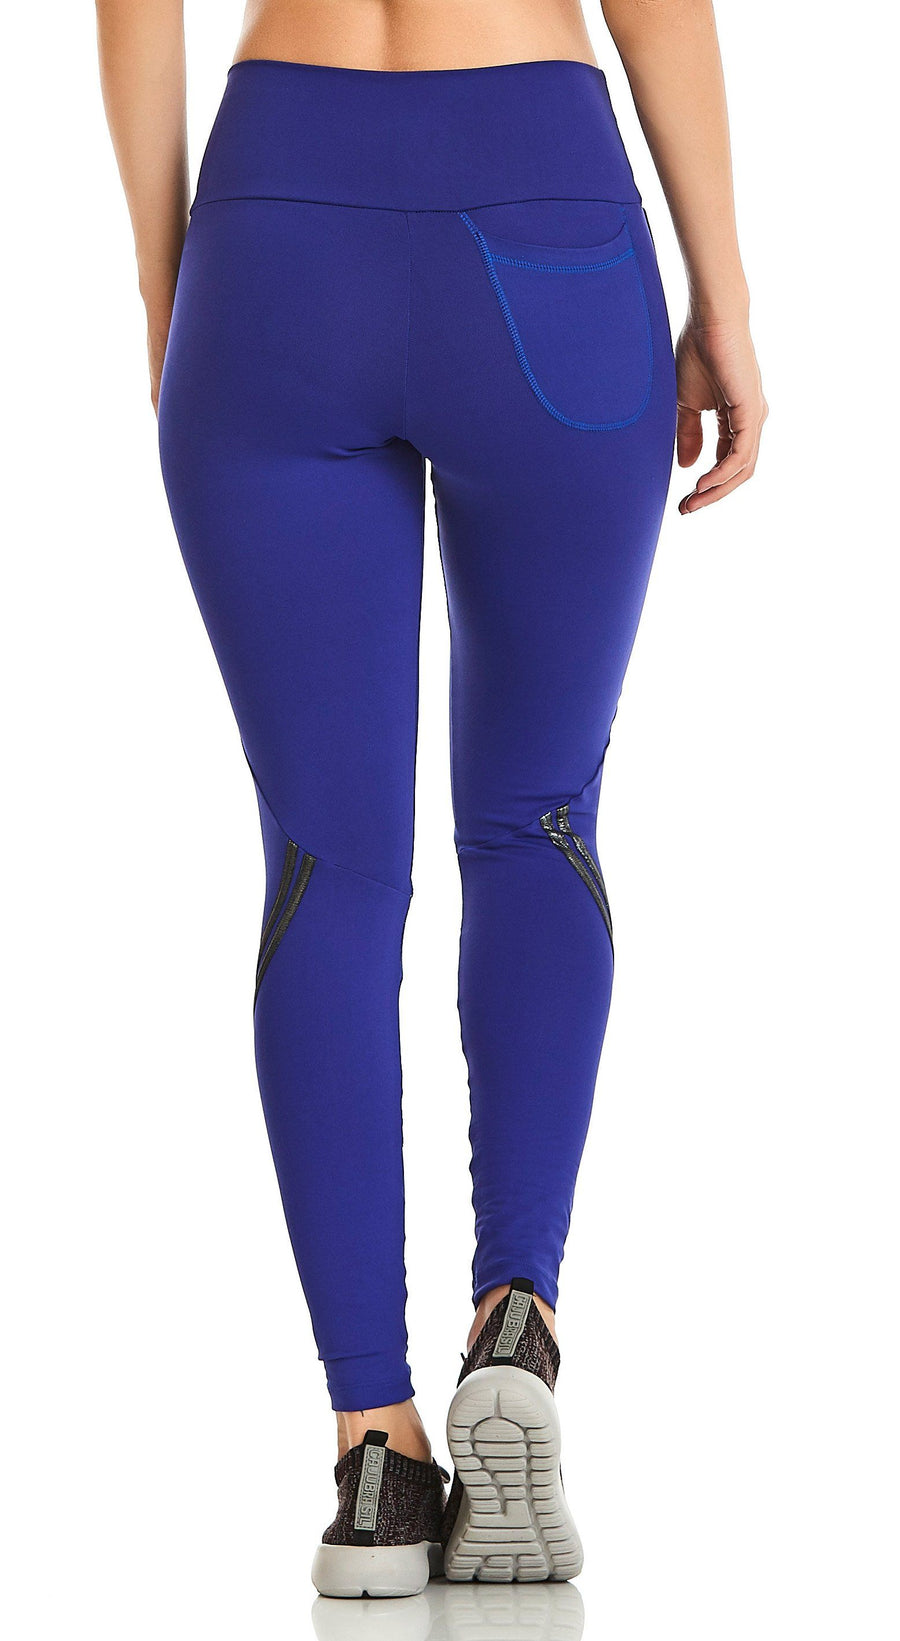 Brazilian Legging -  Seamaid Compression Blue